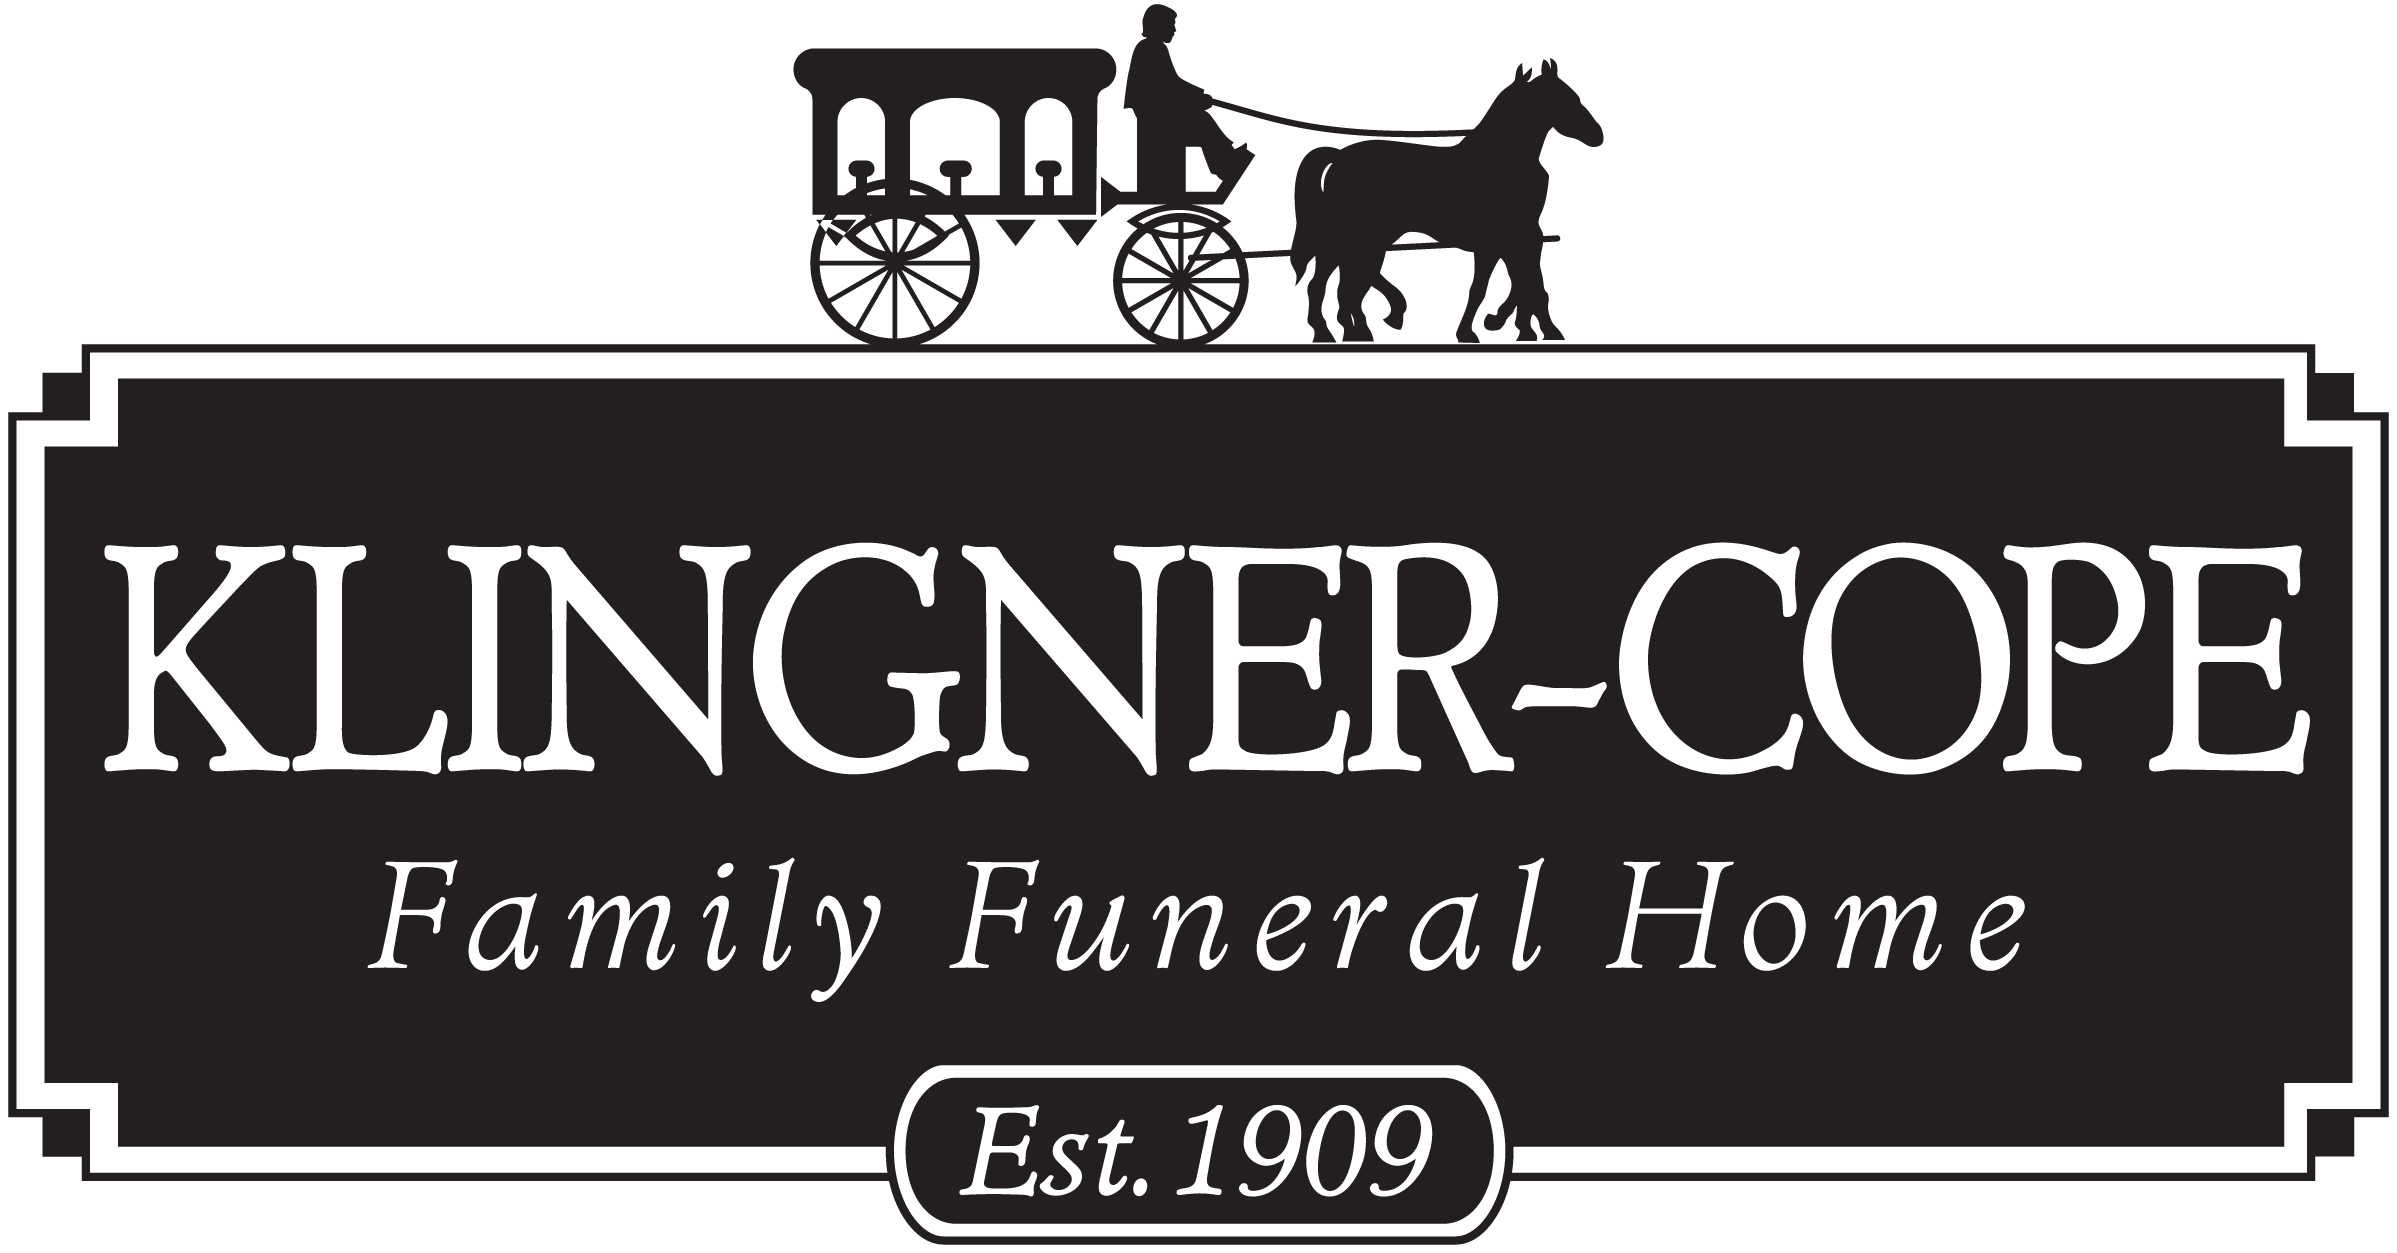 Klingner-Cope Family Funeral Home